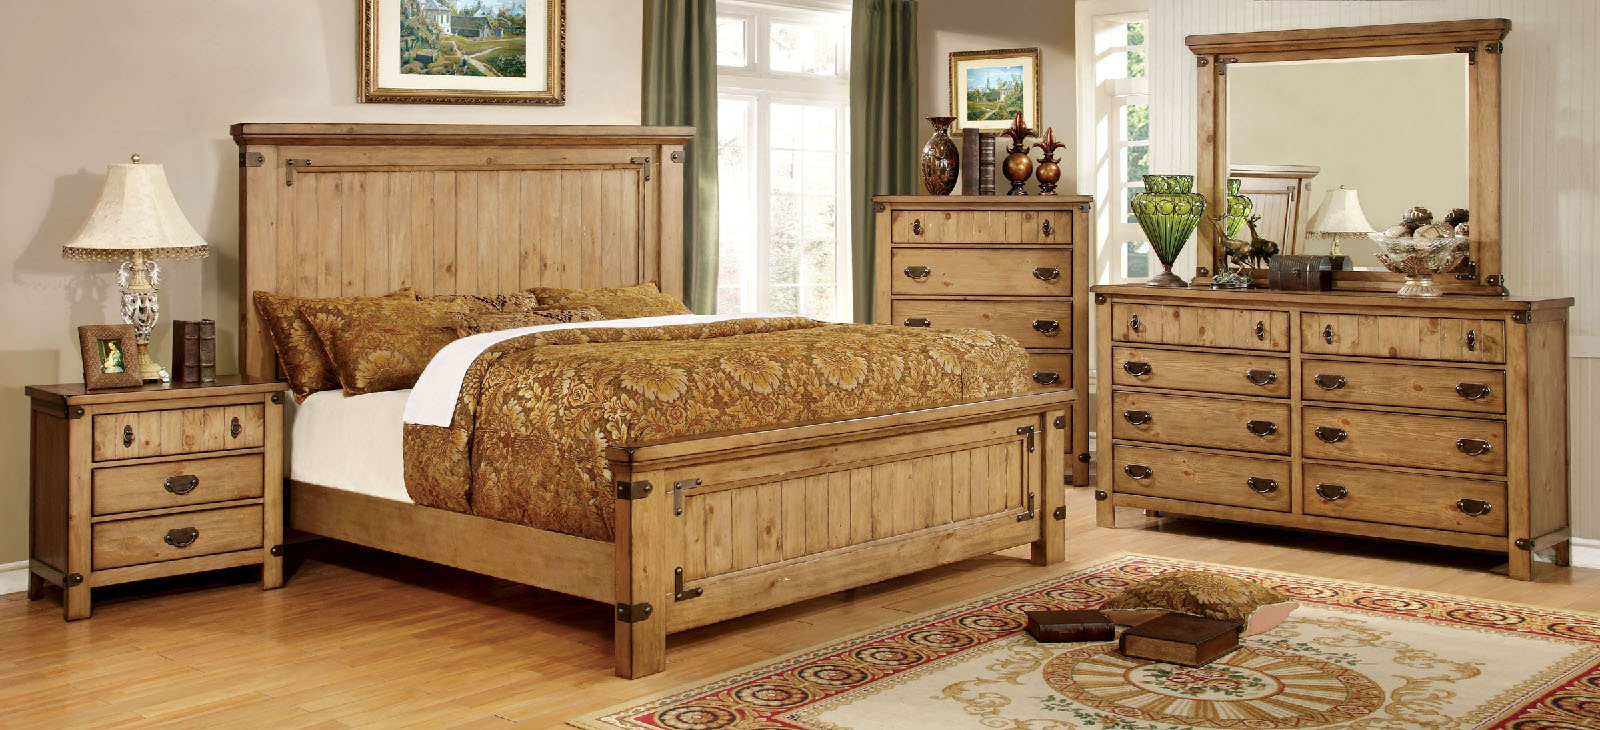 ltlt previous modular bedroom furniture. CM7449 Bed Frame Pioneer Ltlt Previous Modular Bedroom Furniture B